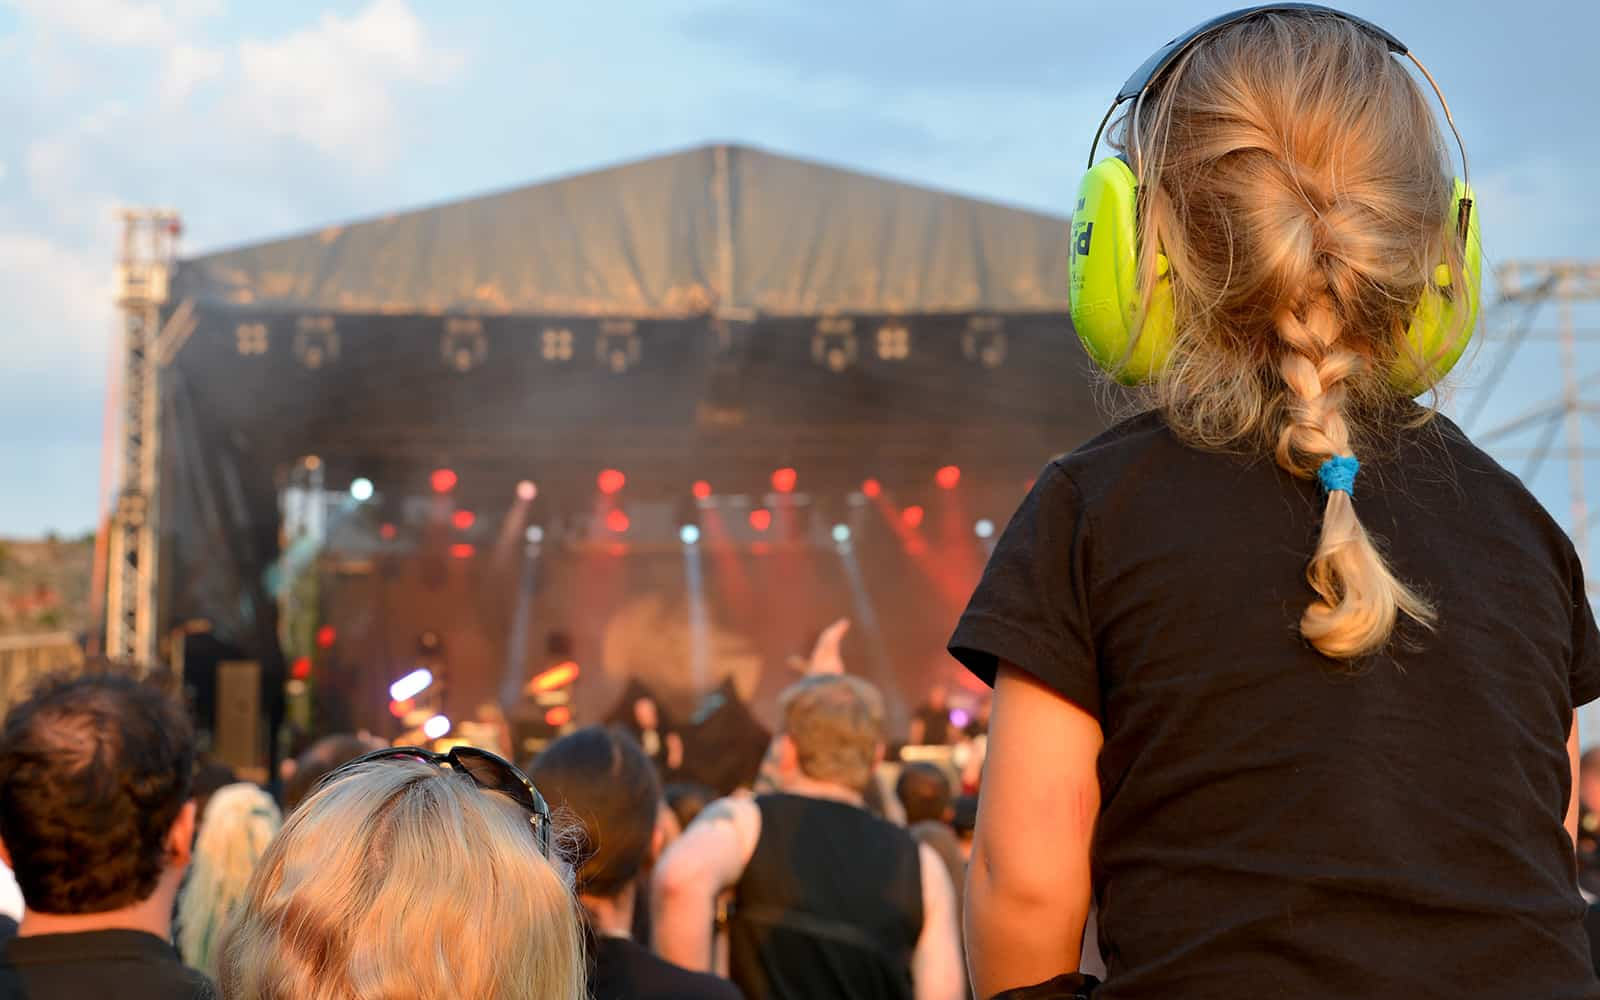 Child at live concert, wearing ear protection